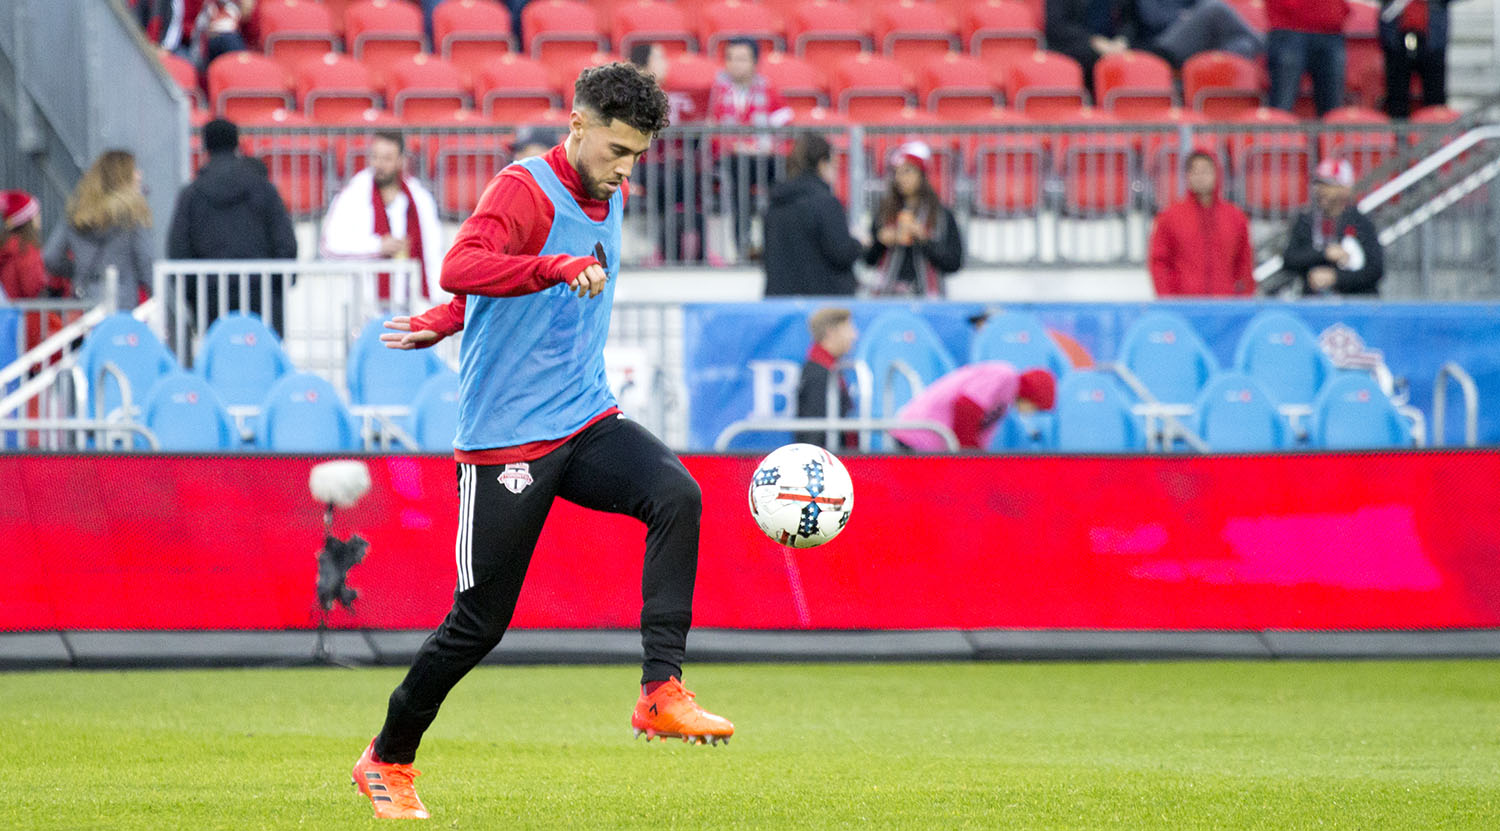 Jonathan Osorio on the ball during warm ups for Toronto FC at BMO Field. Image by Dennis Marciniak of denMAR Media.